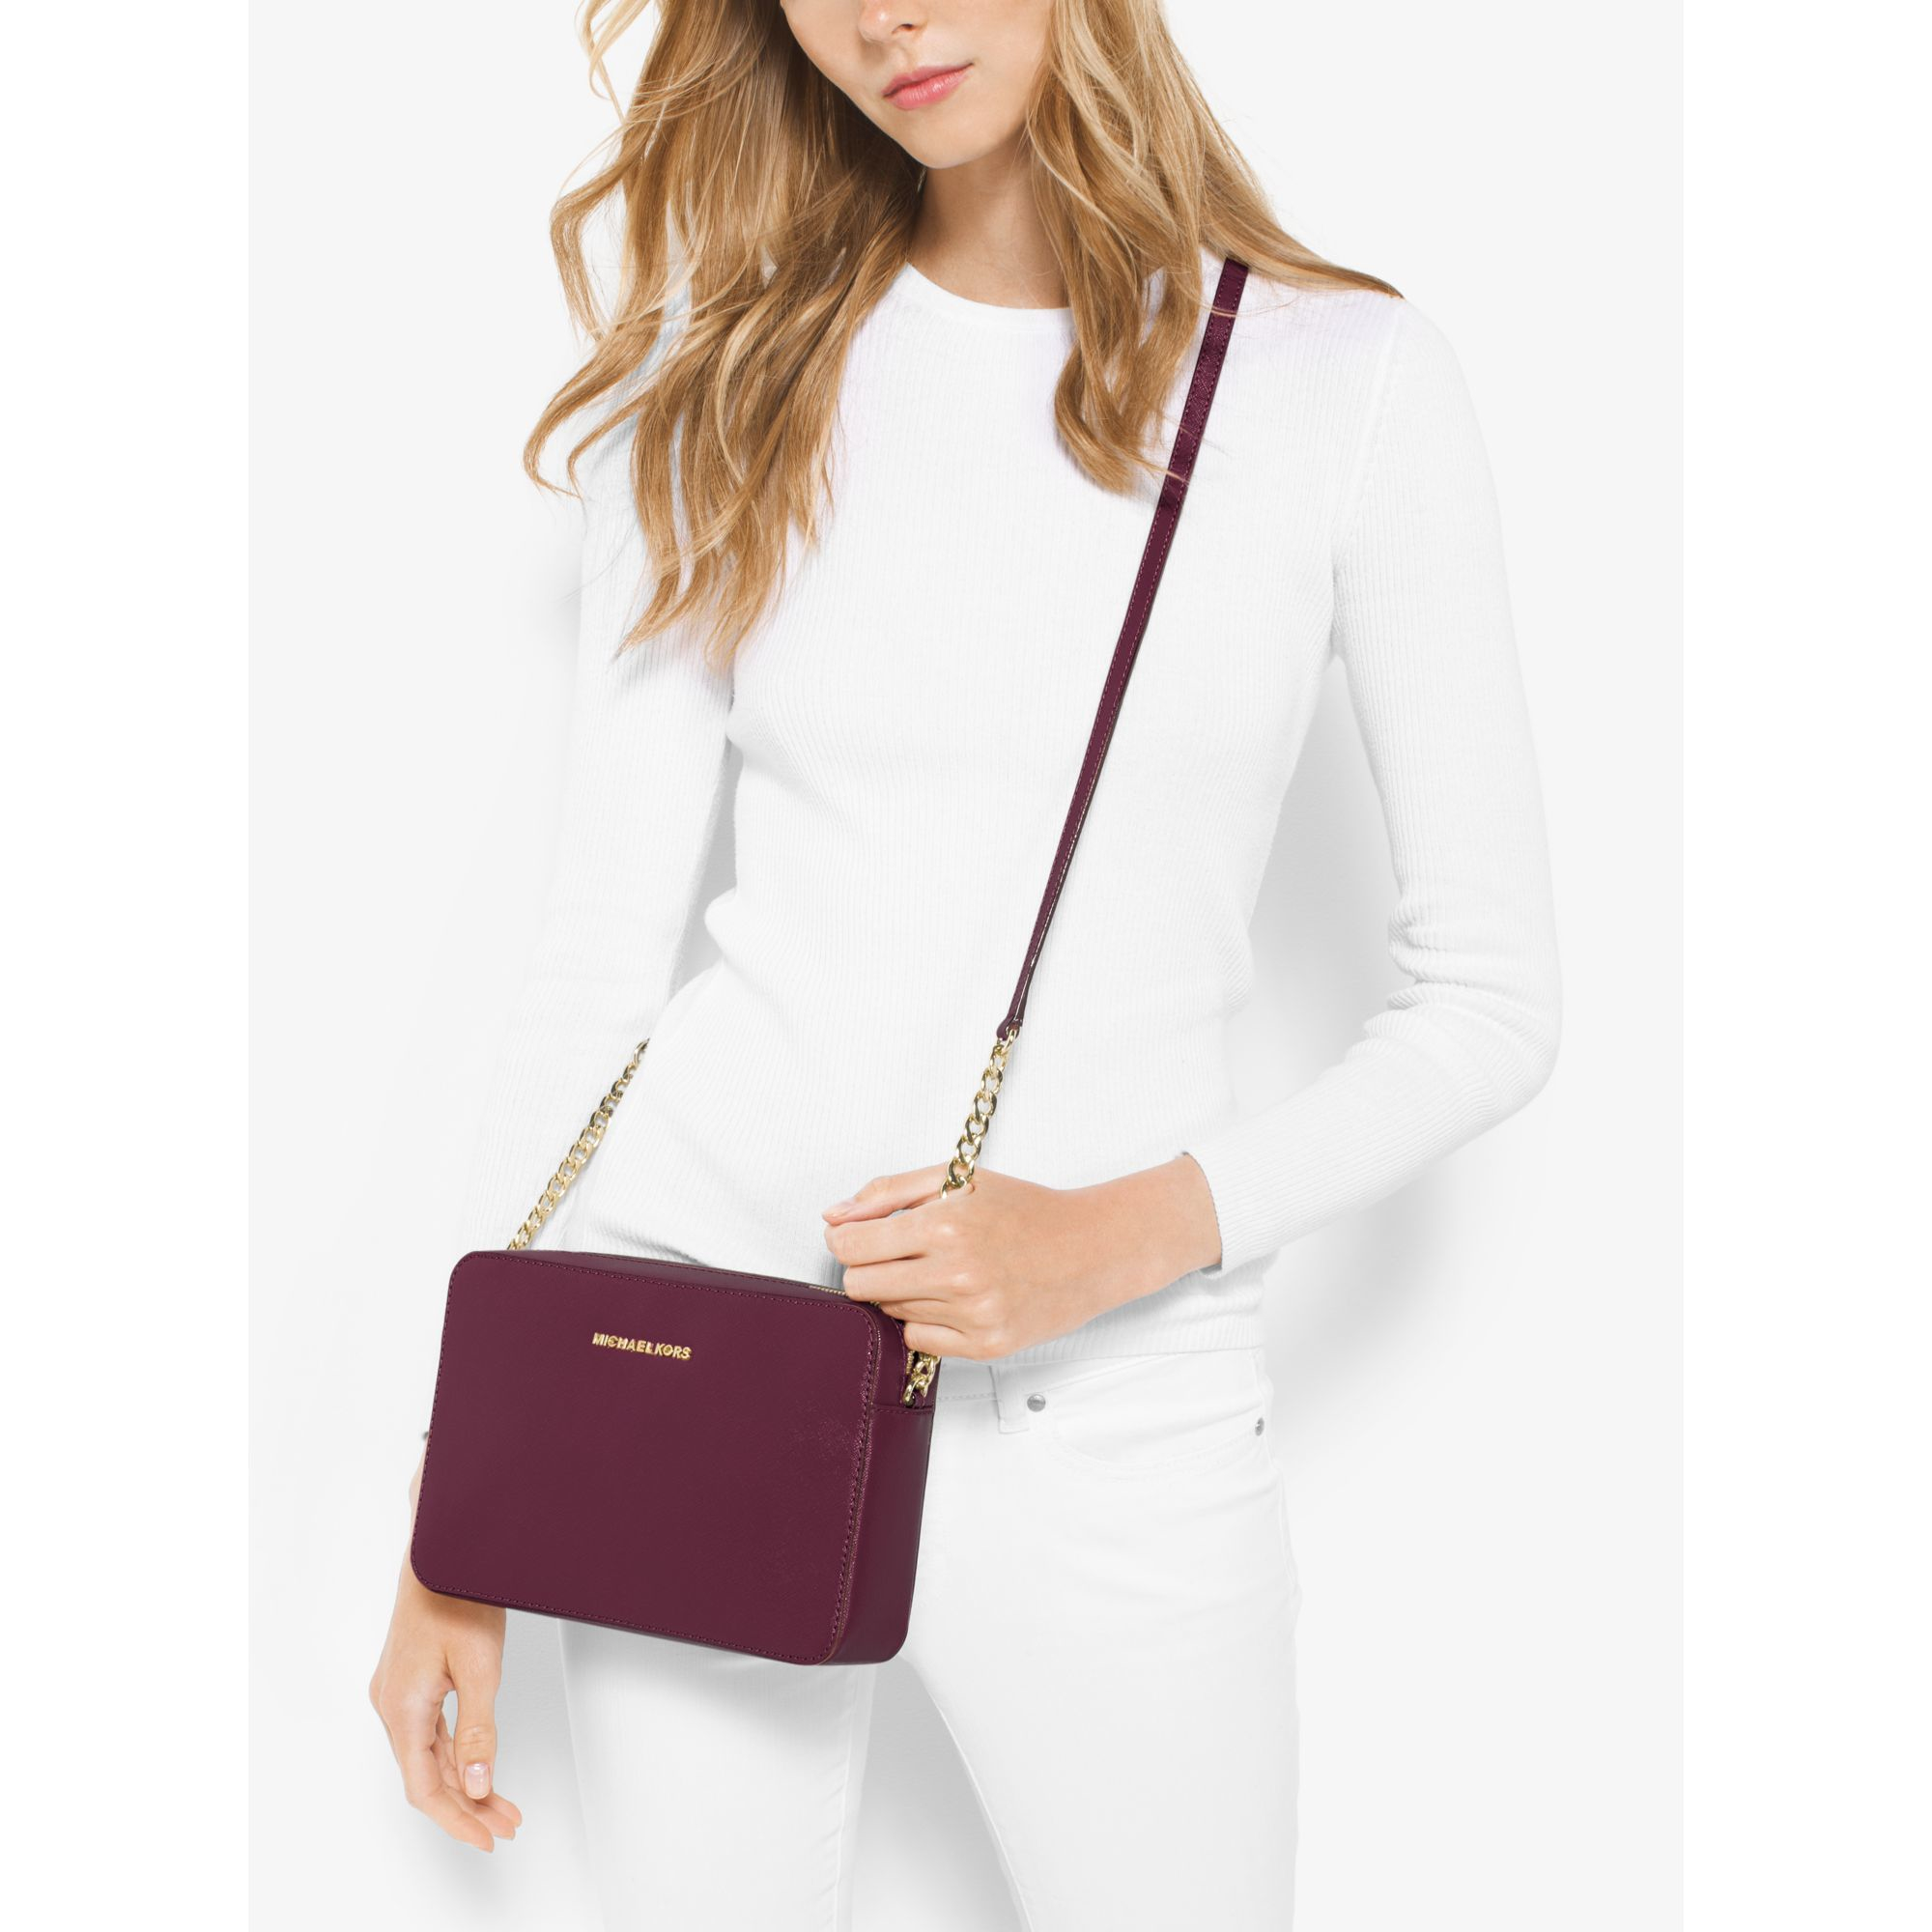 f2f21ff7a Michael Kors Jet Set Large Patent Leather Crossbody Bag in Purple - Lyst